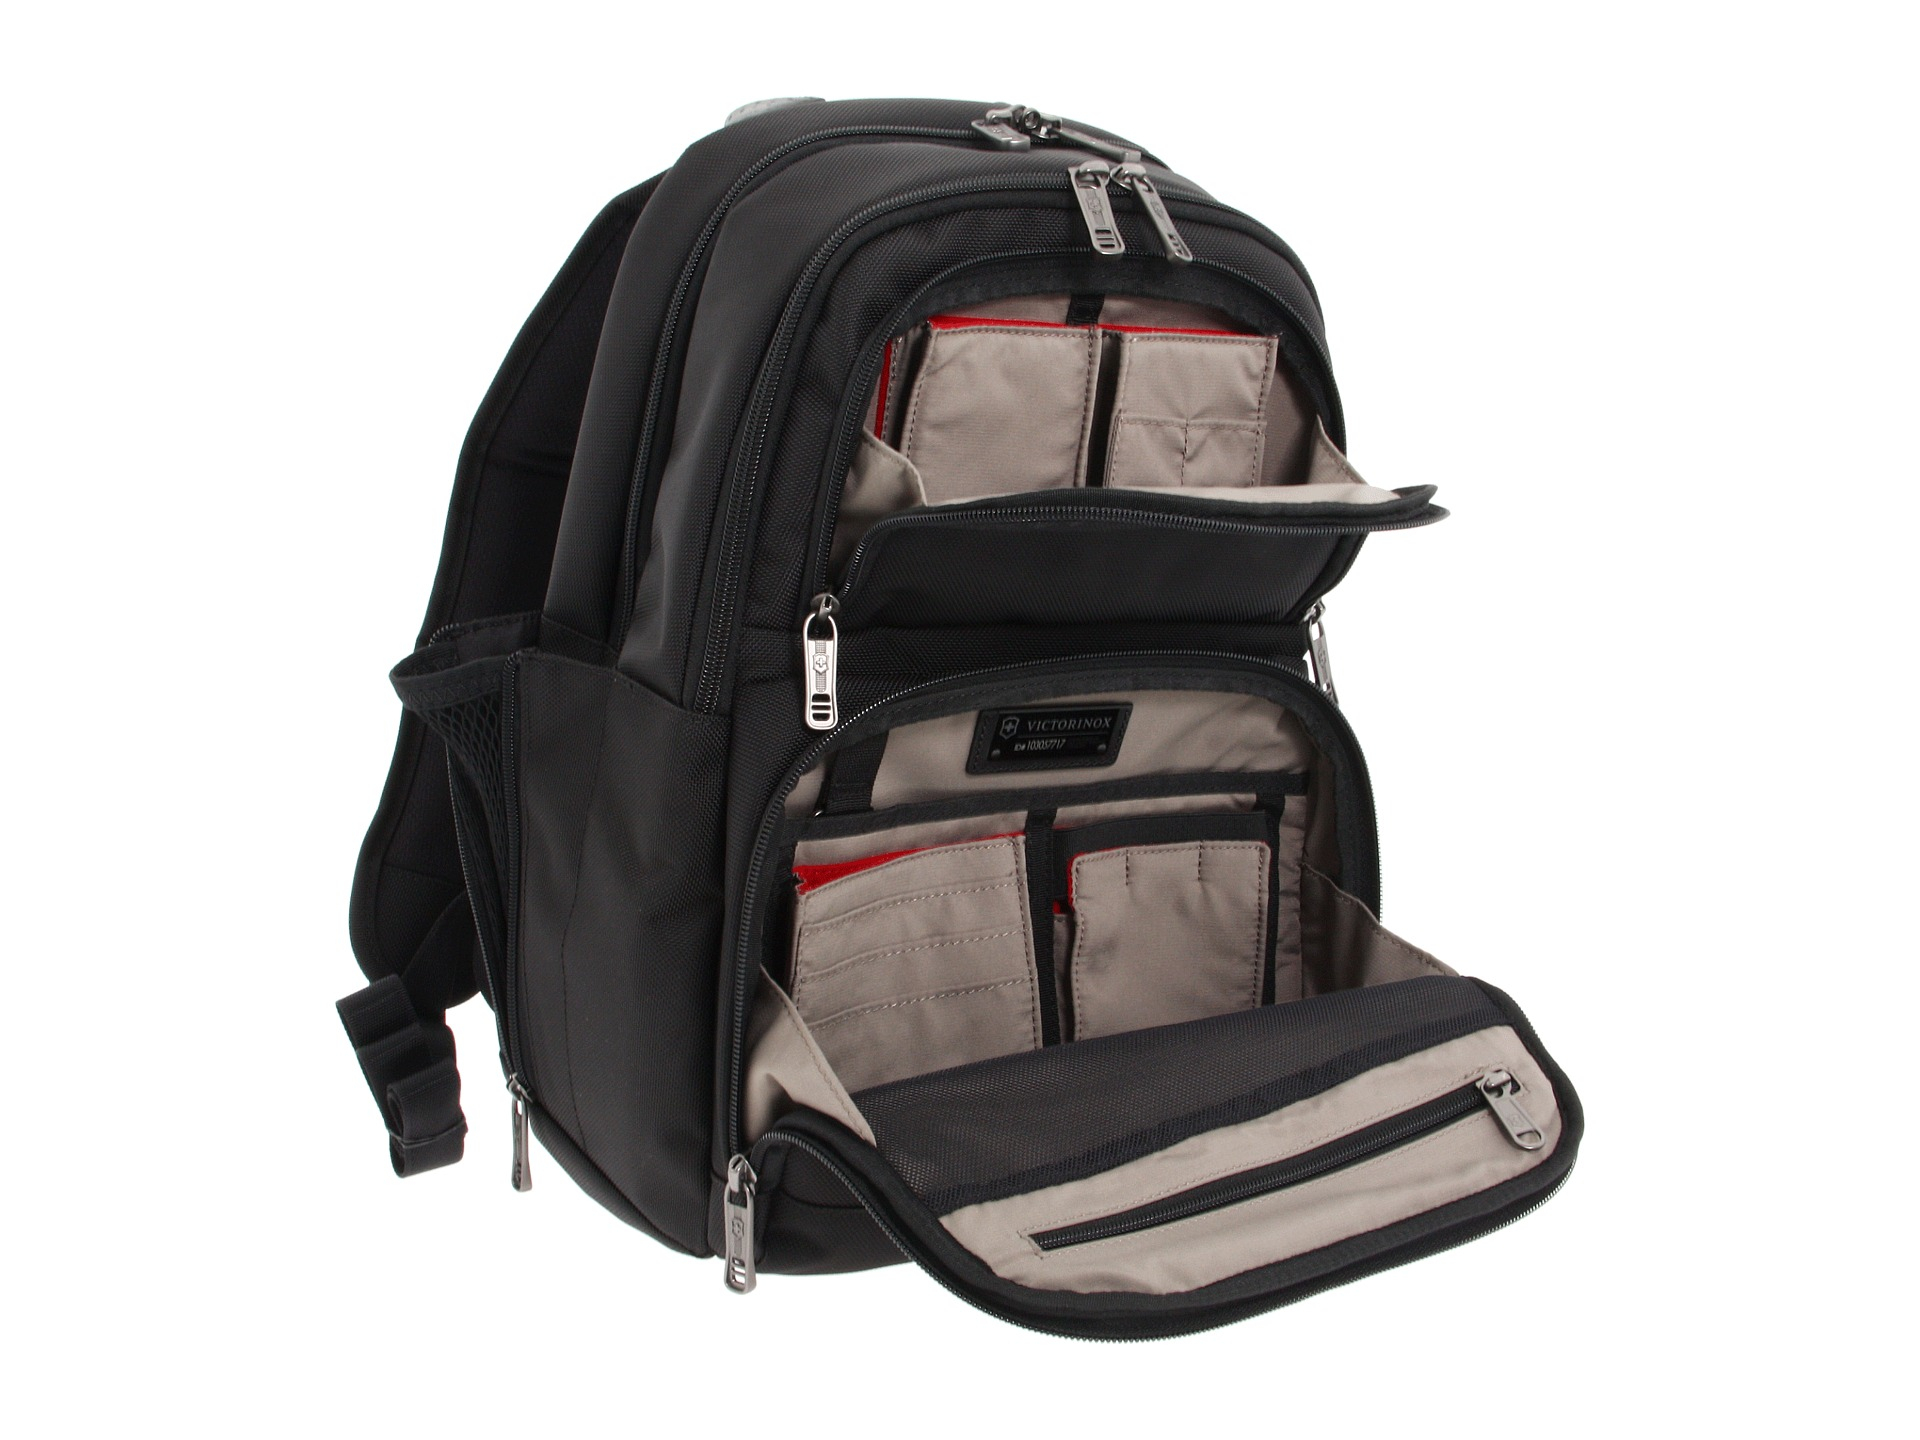 Largest Laptop Backpack | Cg Backpacks